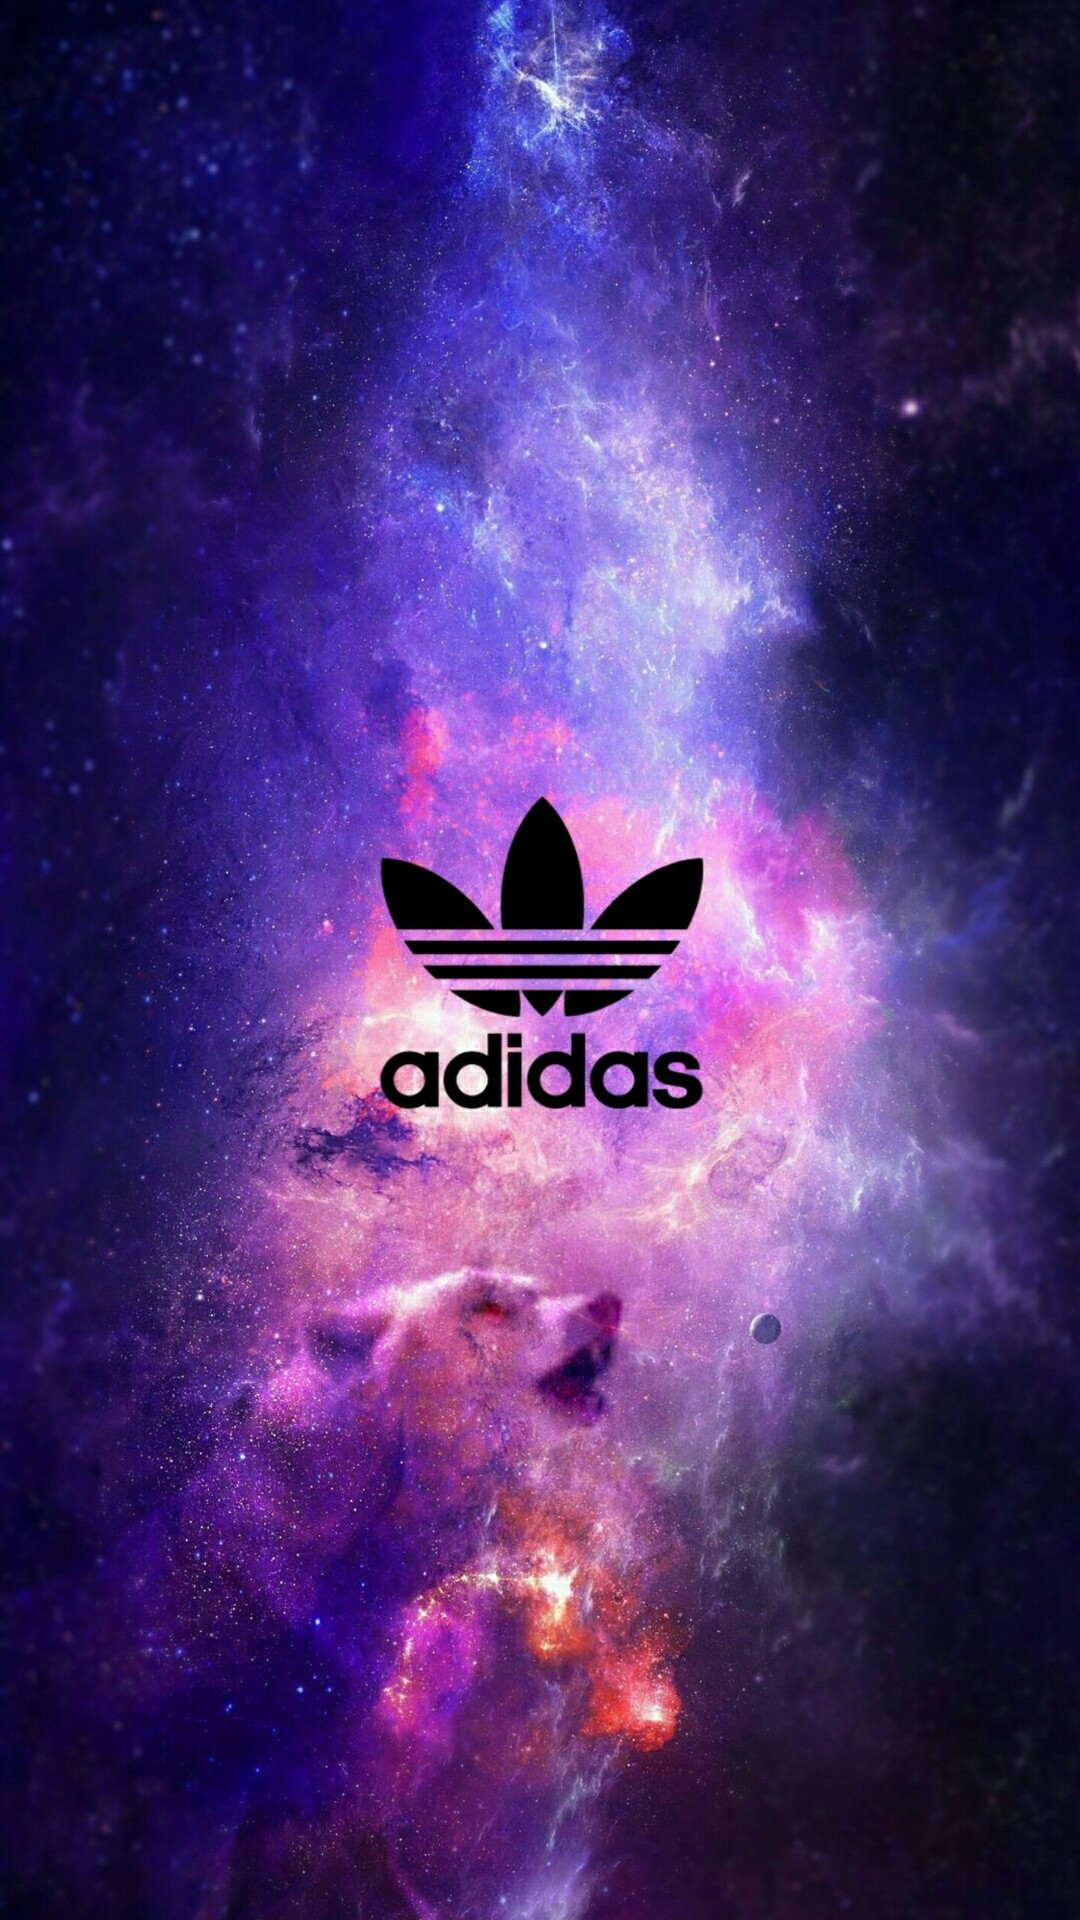 1080x1920 Adidas Wallpaper/Graphic